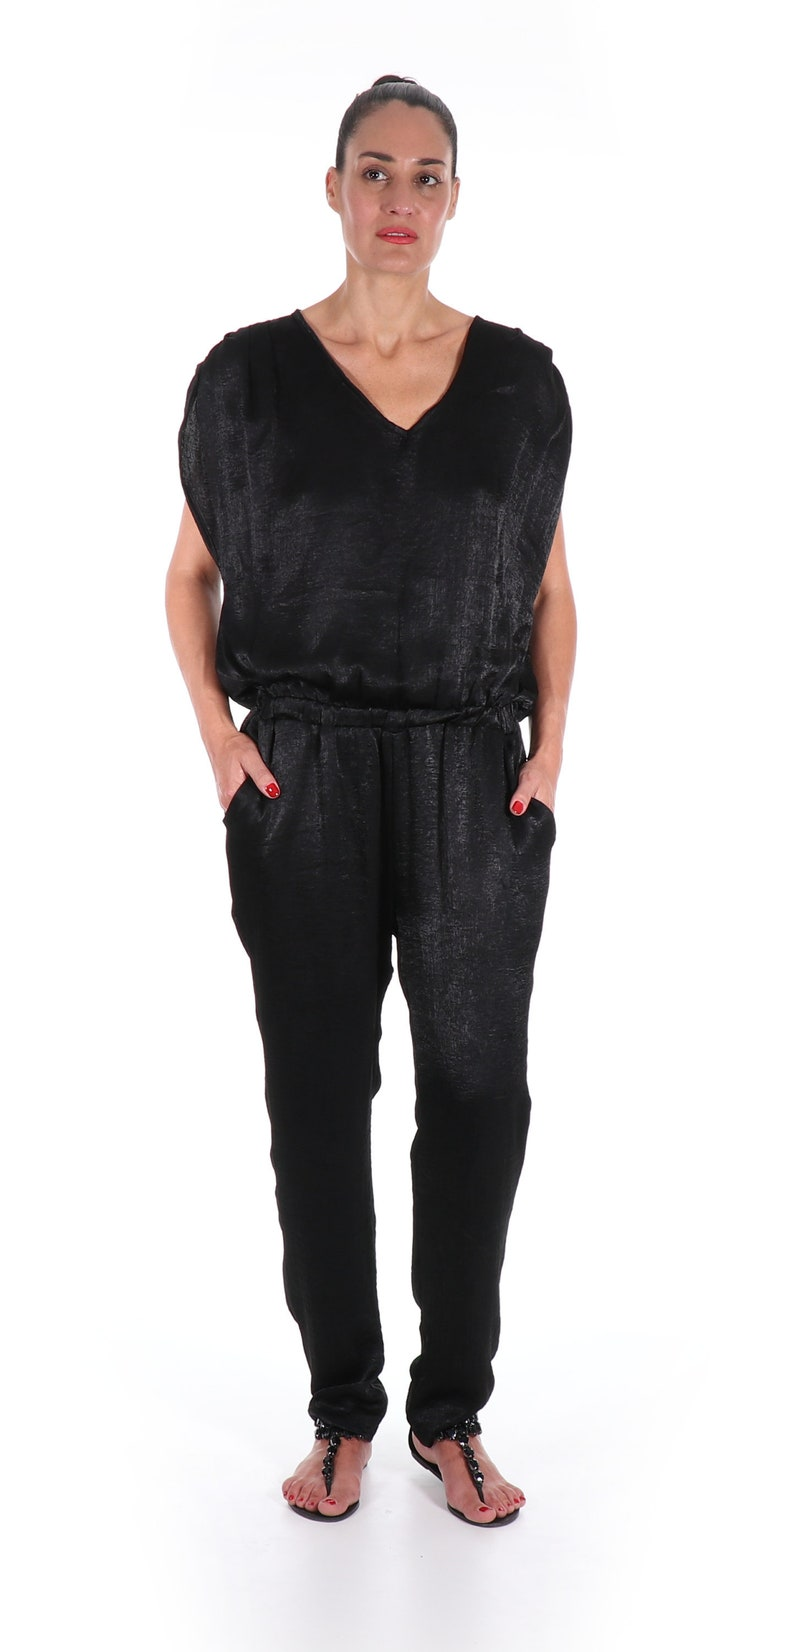 00829279b8f8 Black Jumpsuit Womens Black Overalls Sexy Jumper Short